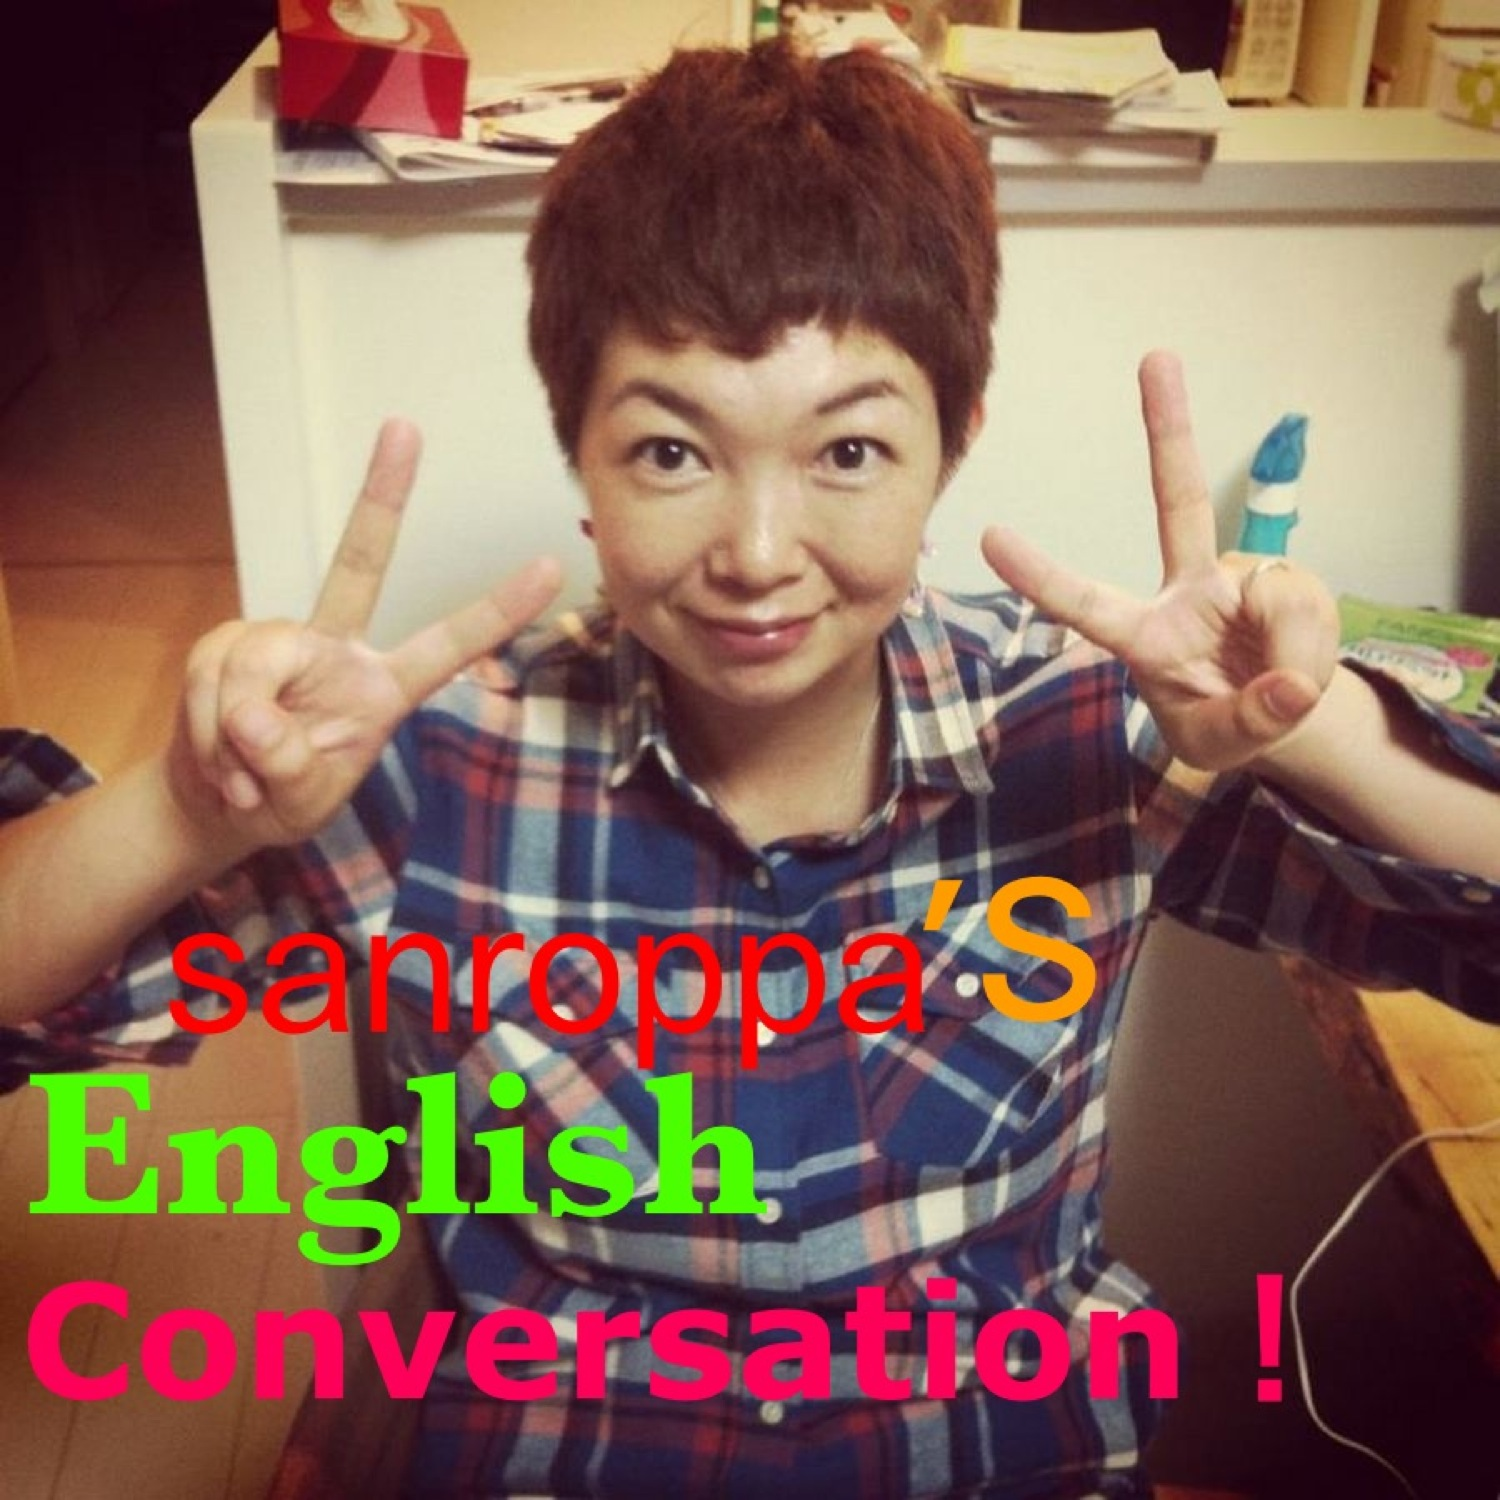 sanroppa'S English Conversation!